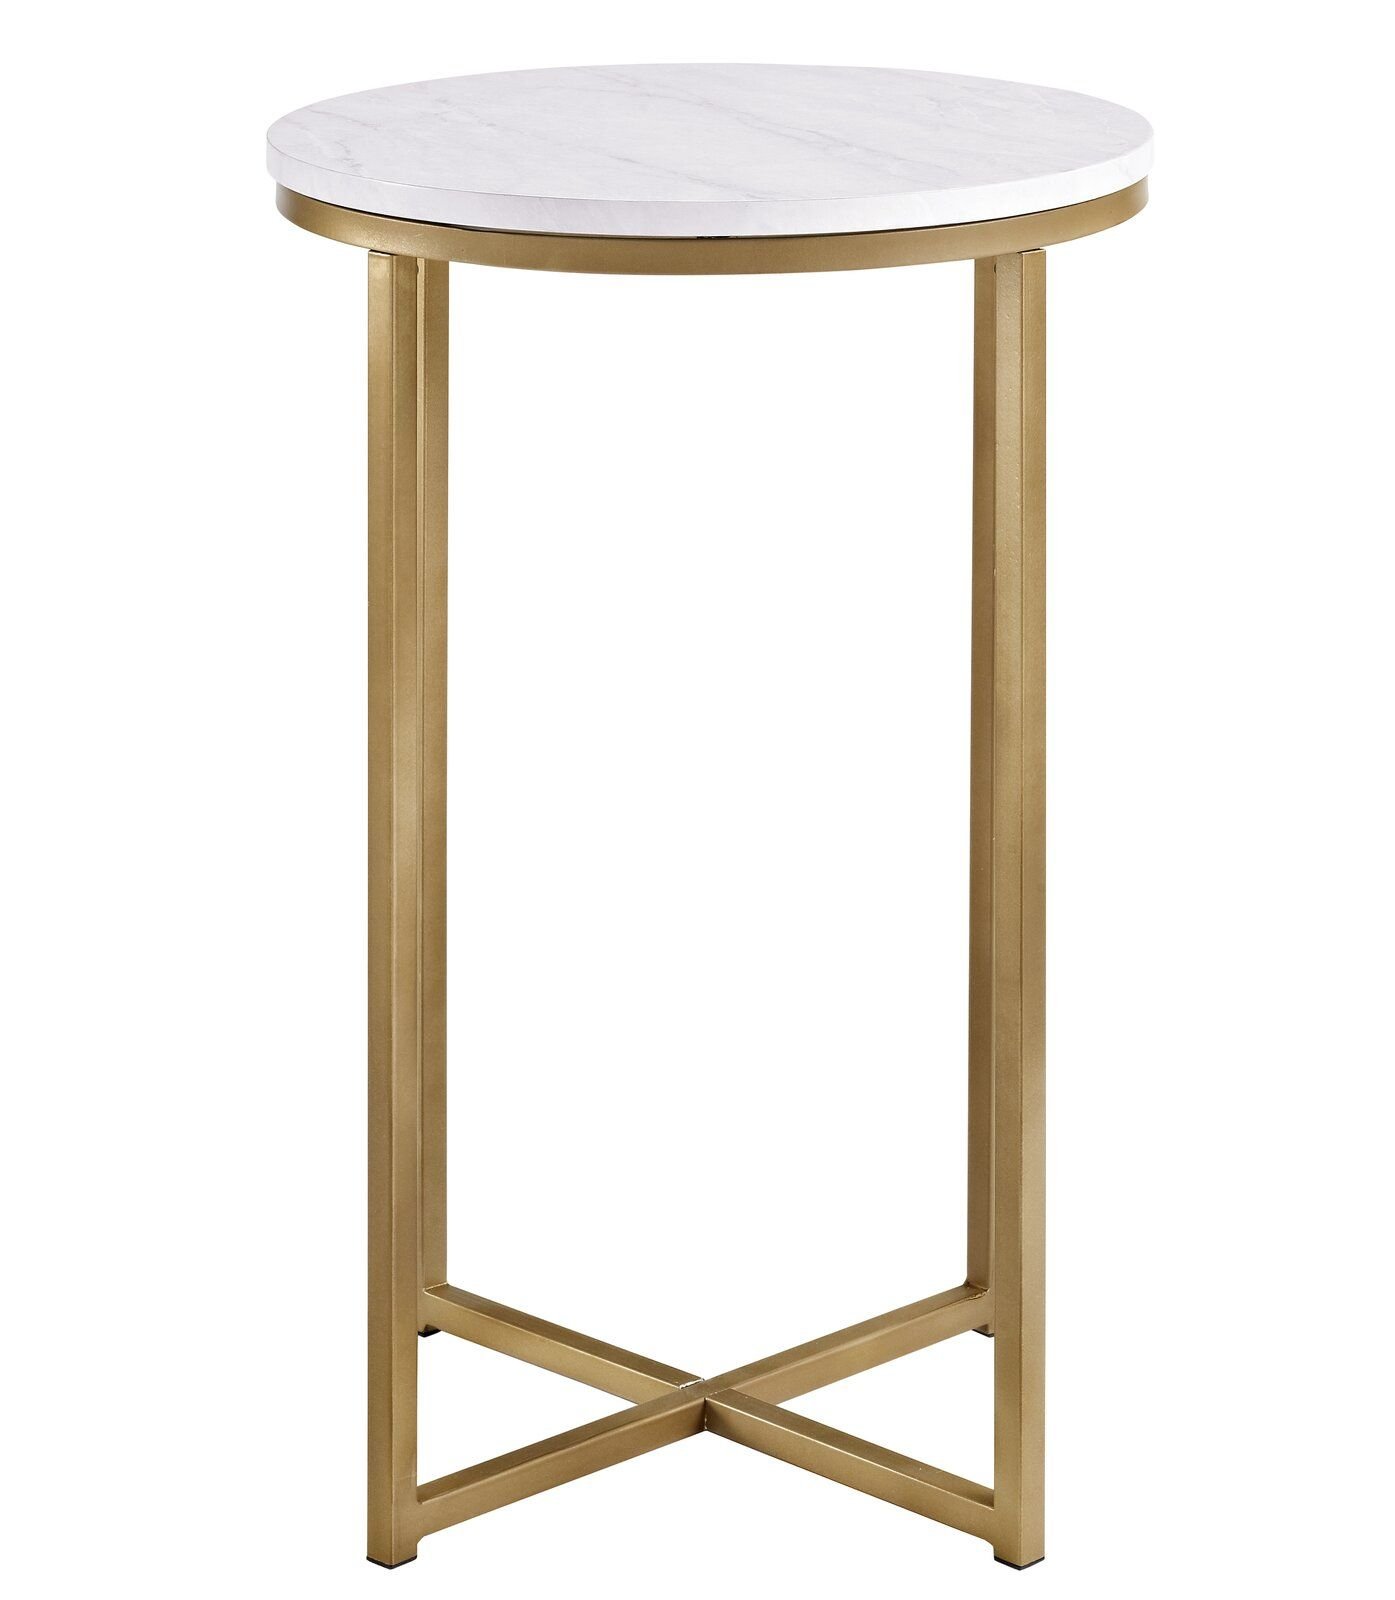 Wasser End Table Marble Side Tables Marble Side Table Round Side Table [ 1600 x 1395 Pixel ]